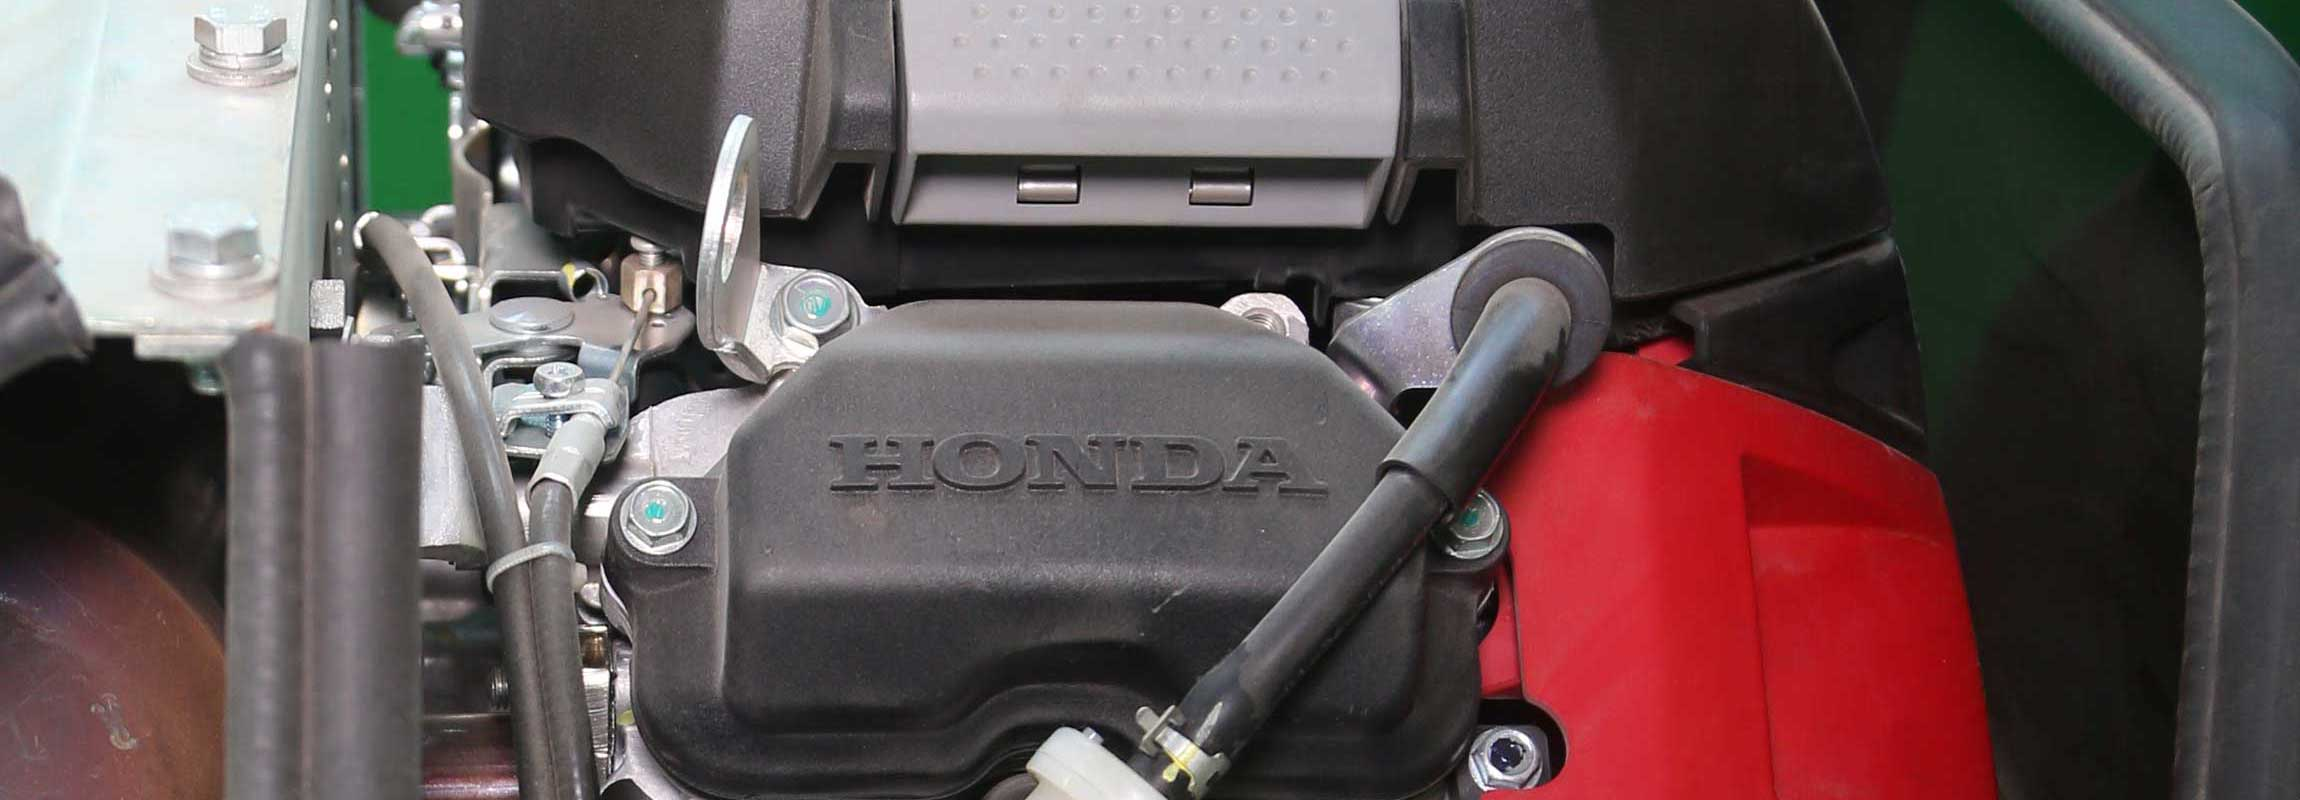 HONDA engine for santai